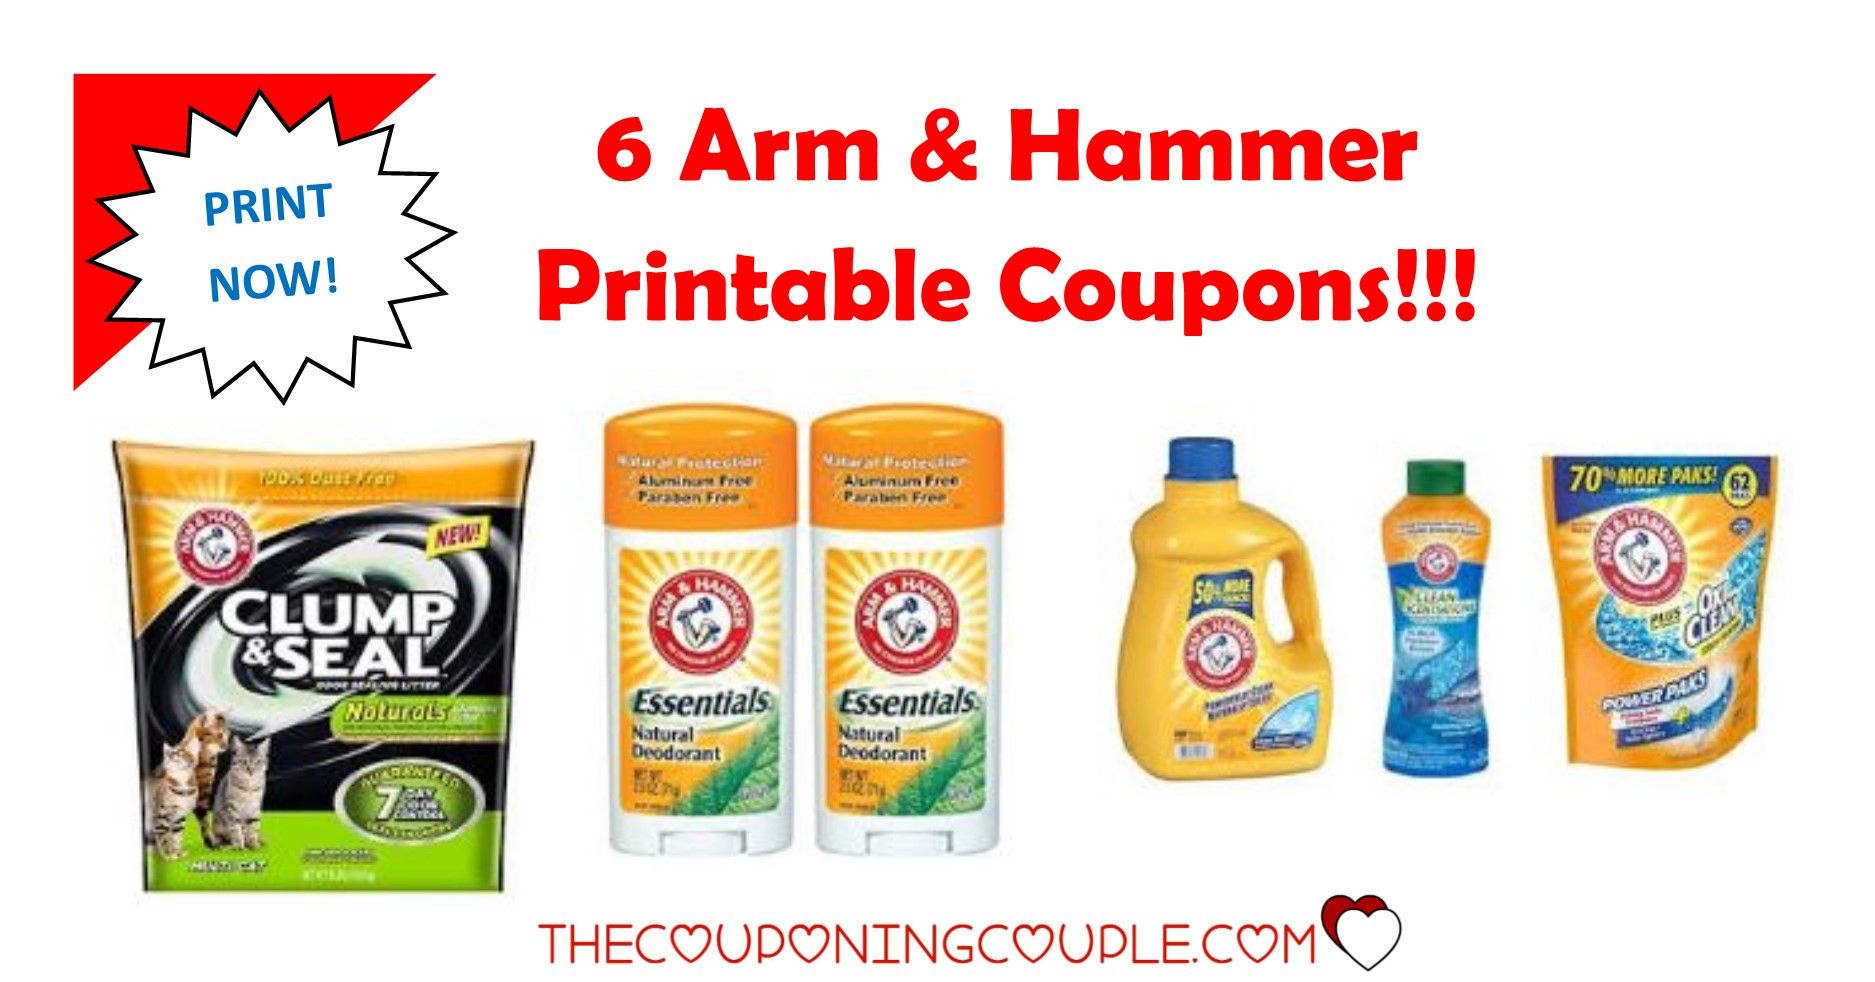 3 Arm & Hammer Printable Coupons ~ Print Now!! Don't Miss Out - Free Printable Arm And Hammer Coupons